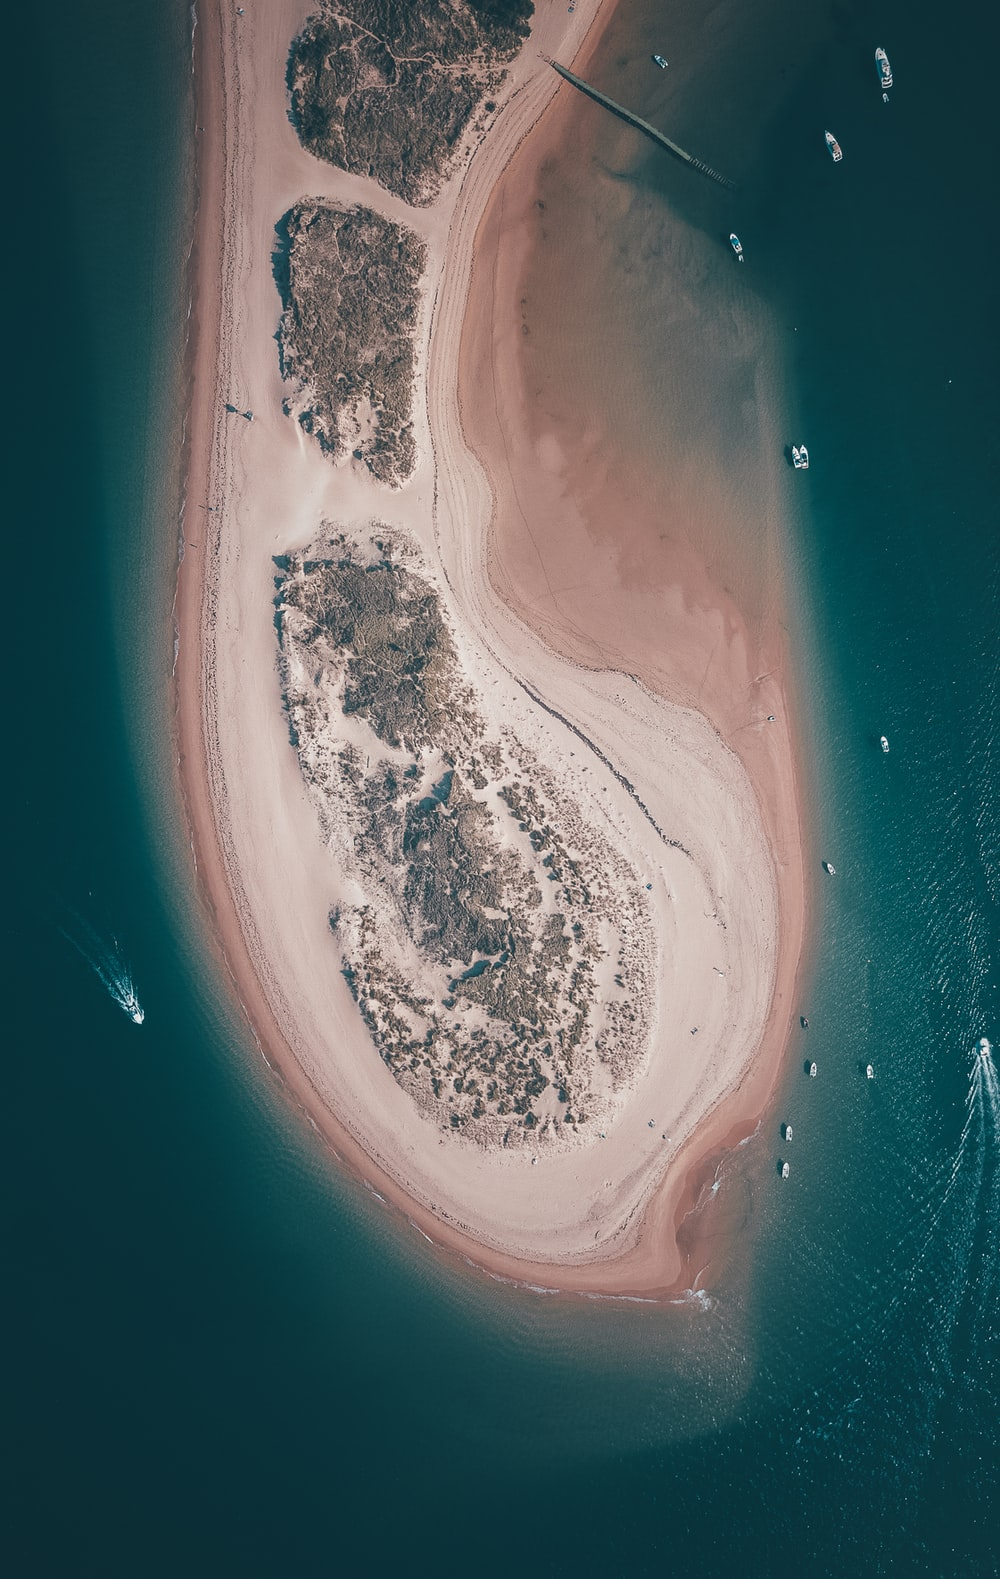 bird's eye view photograph of island